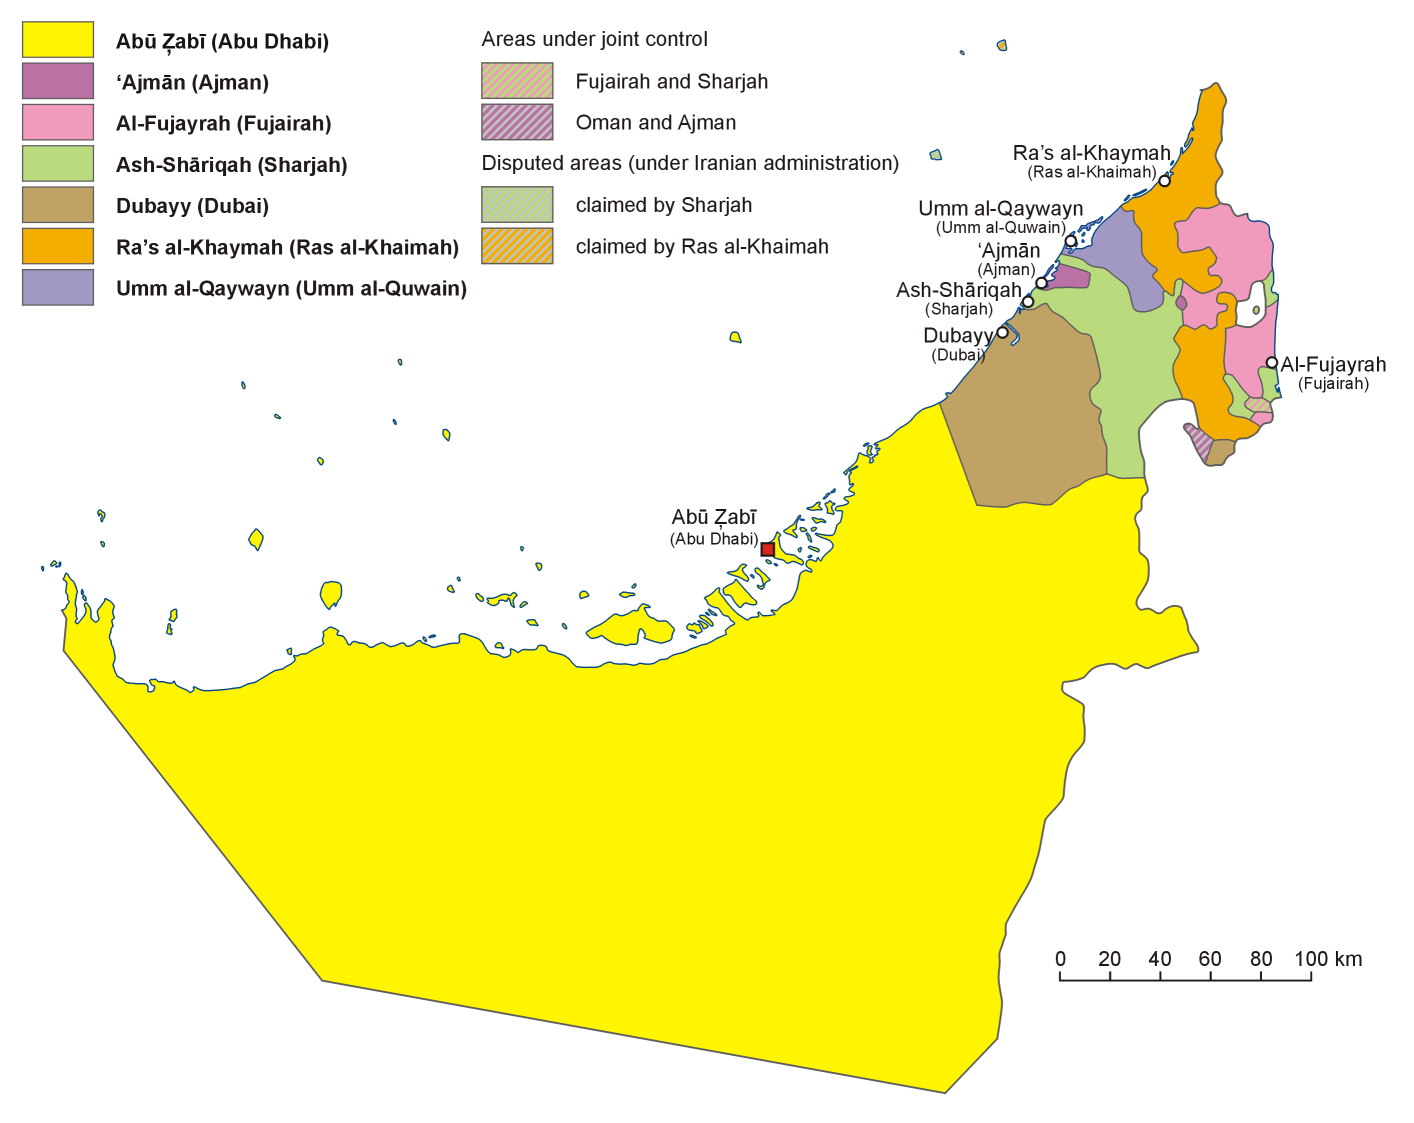 http://upload.wikimedia.org/wikipedia/commons/7/73/UAE_en-map.png